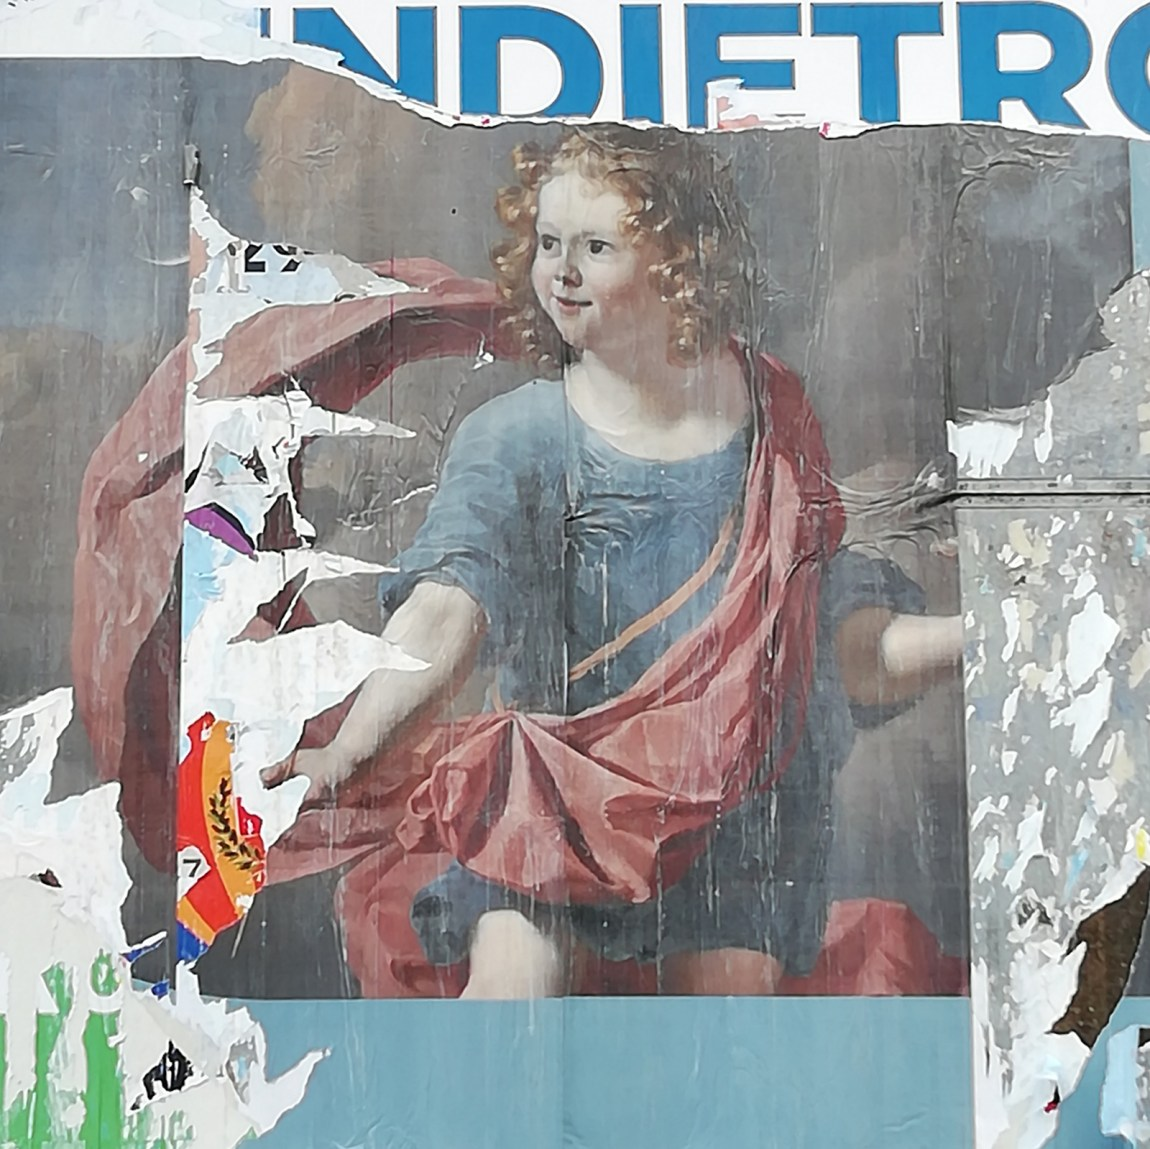 photograph of billboard with posters peeling to reveal previous layers, including a young child with curly hair